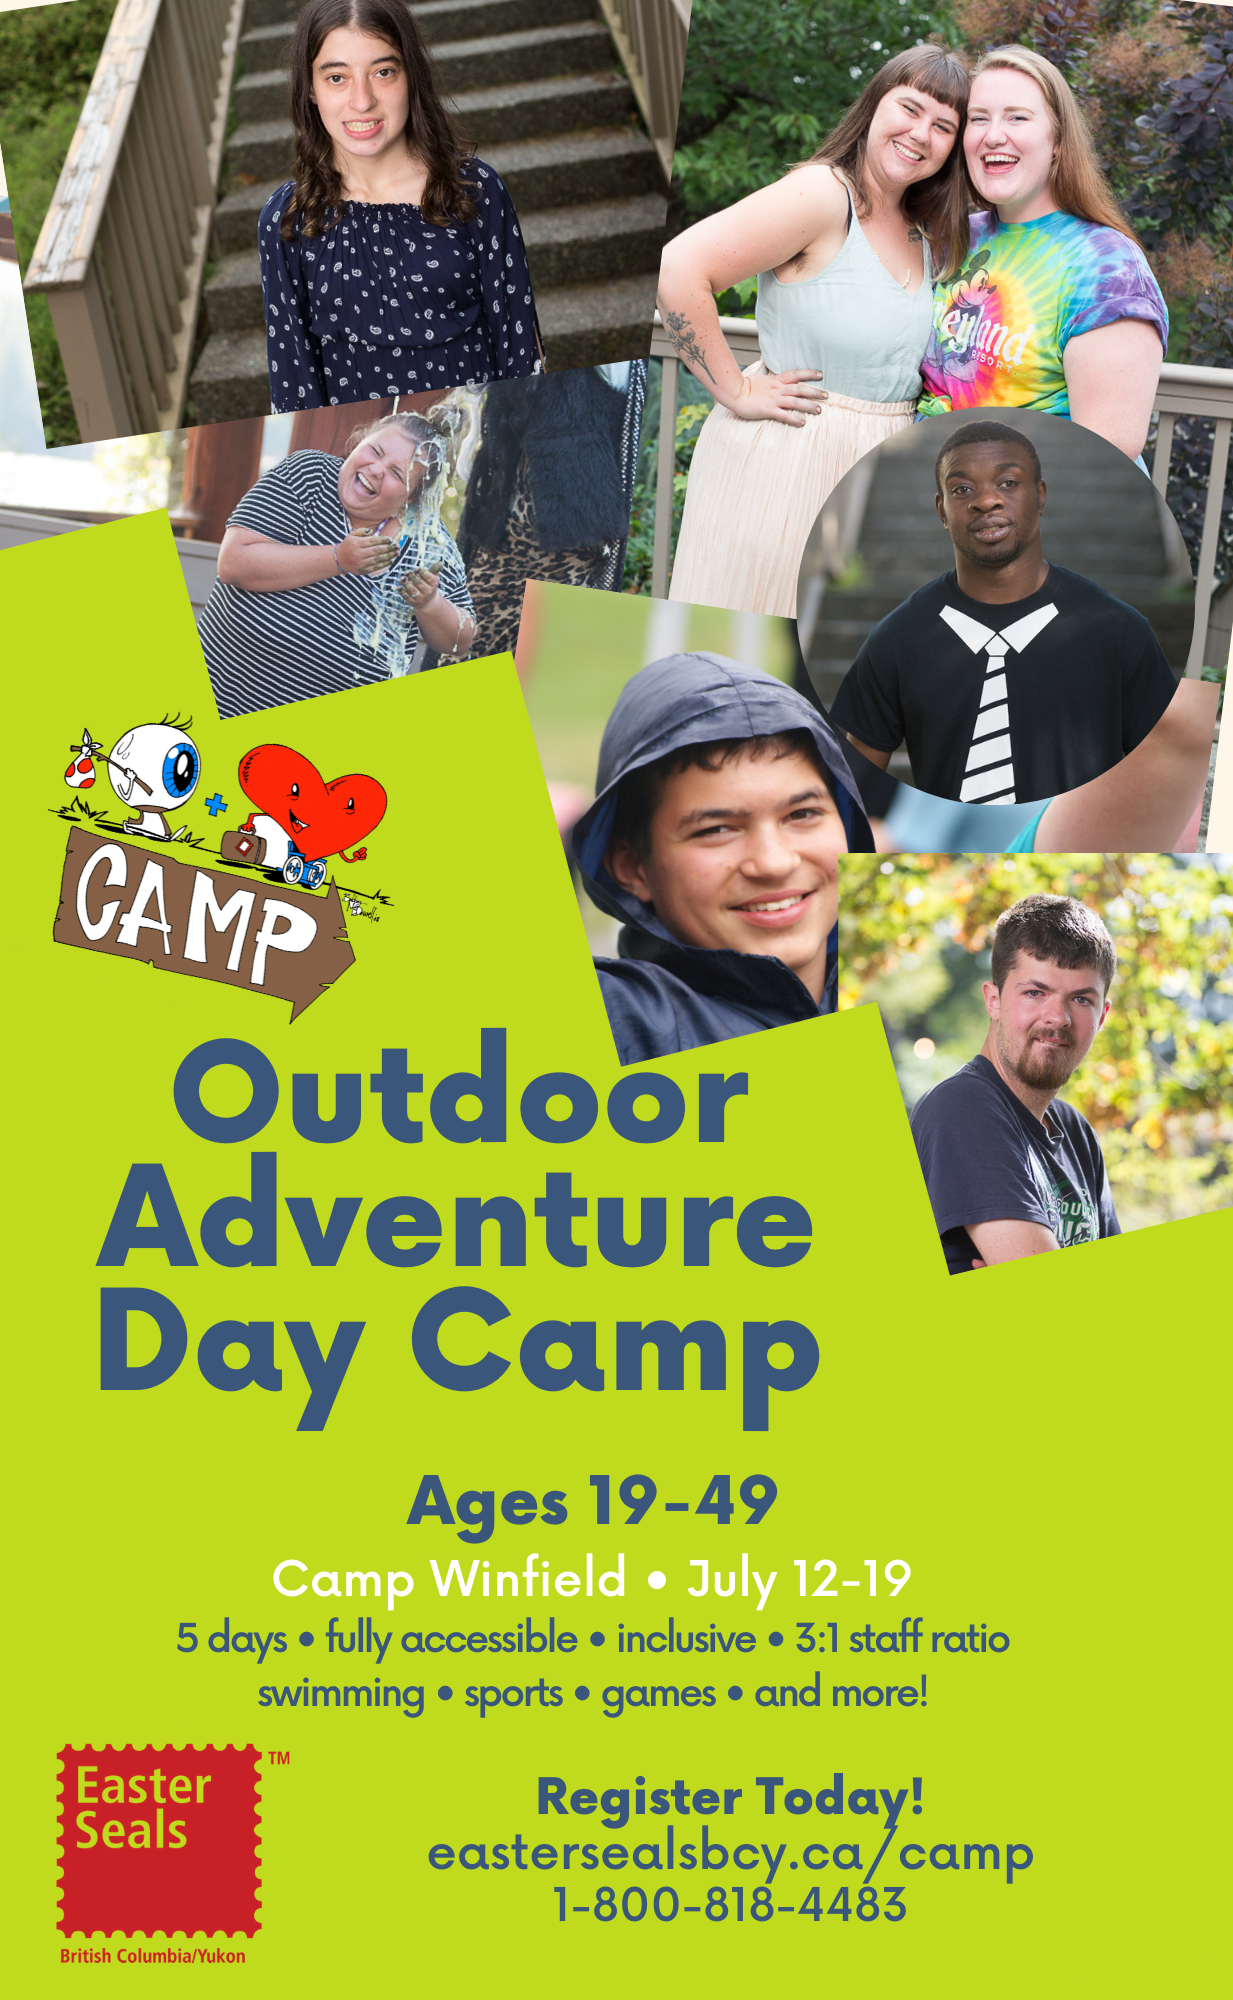 Outdoor Adventure Day Camp (Ages 19-49)